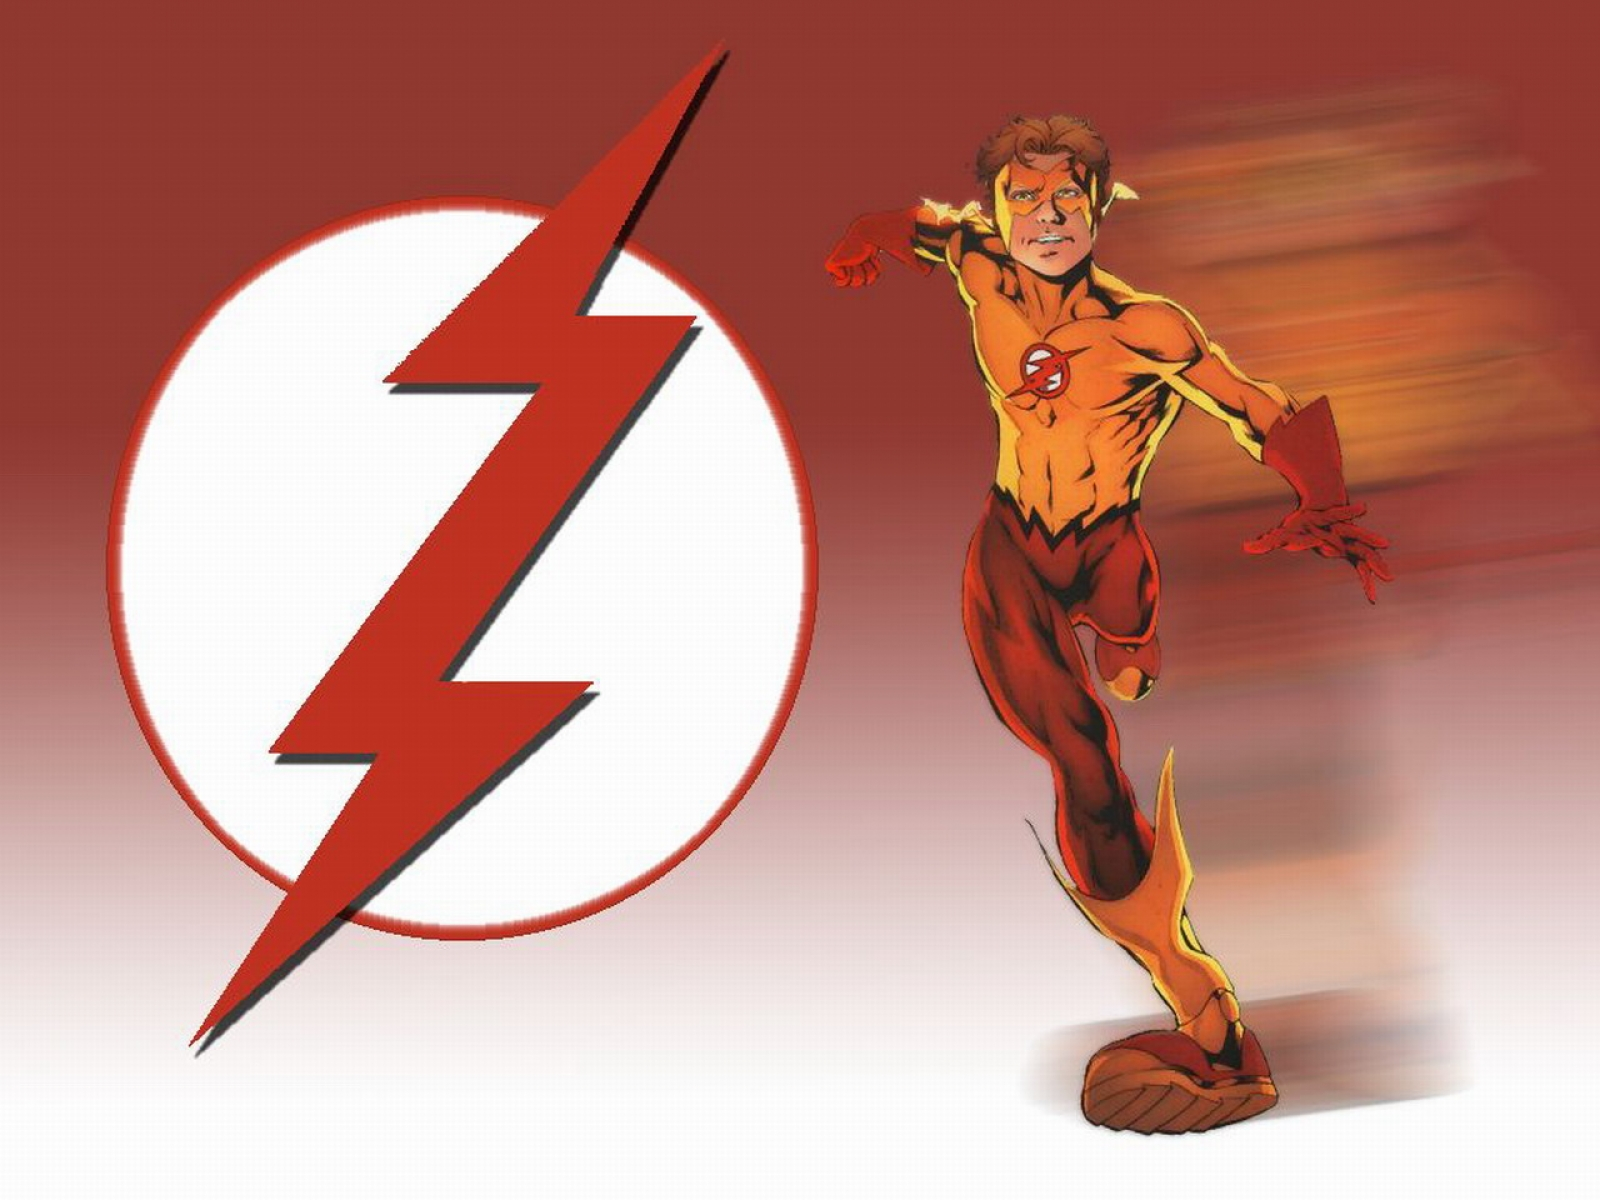 5 Kid Flash HD Wallpapers | Backgrounds - Wallpaper Abyss